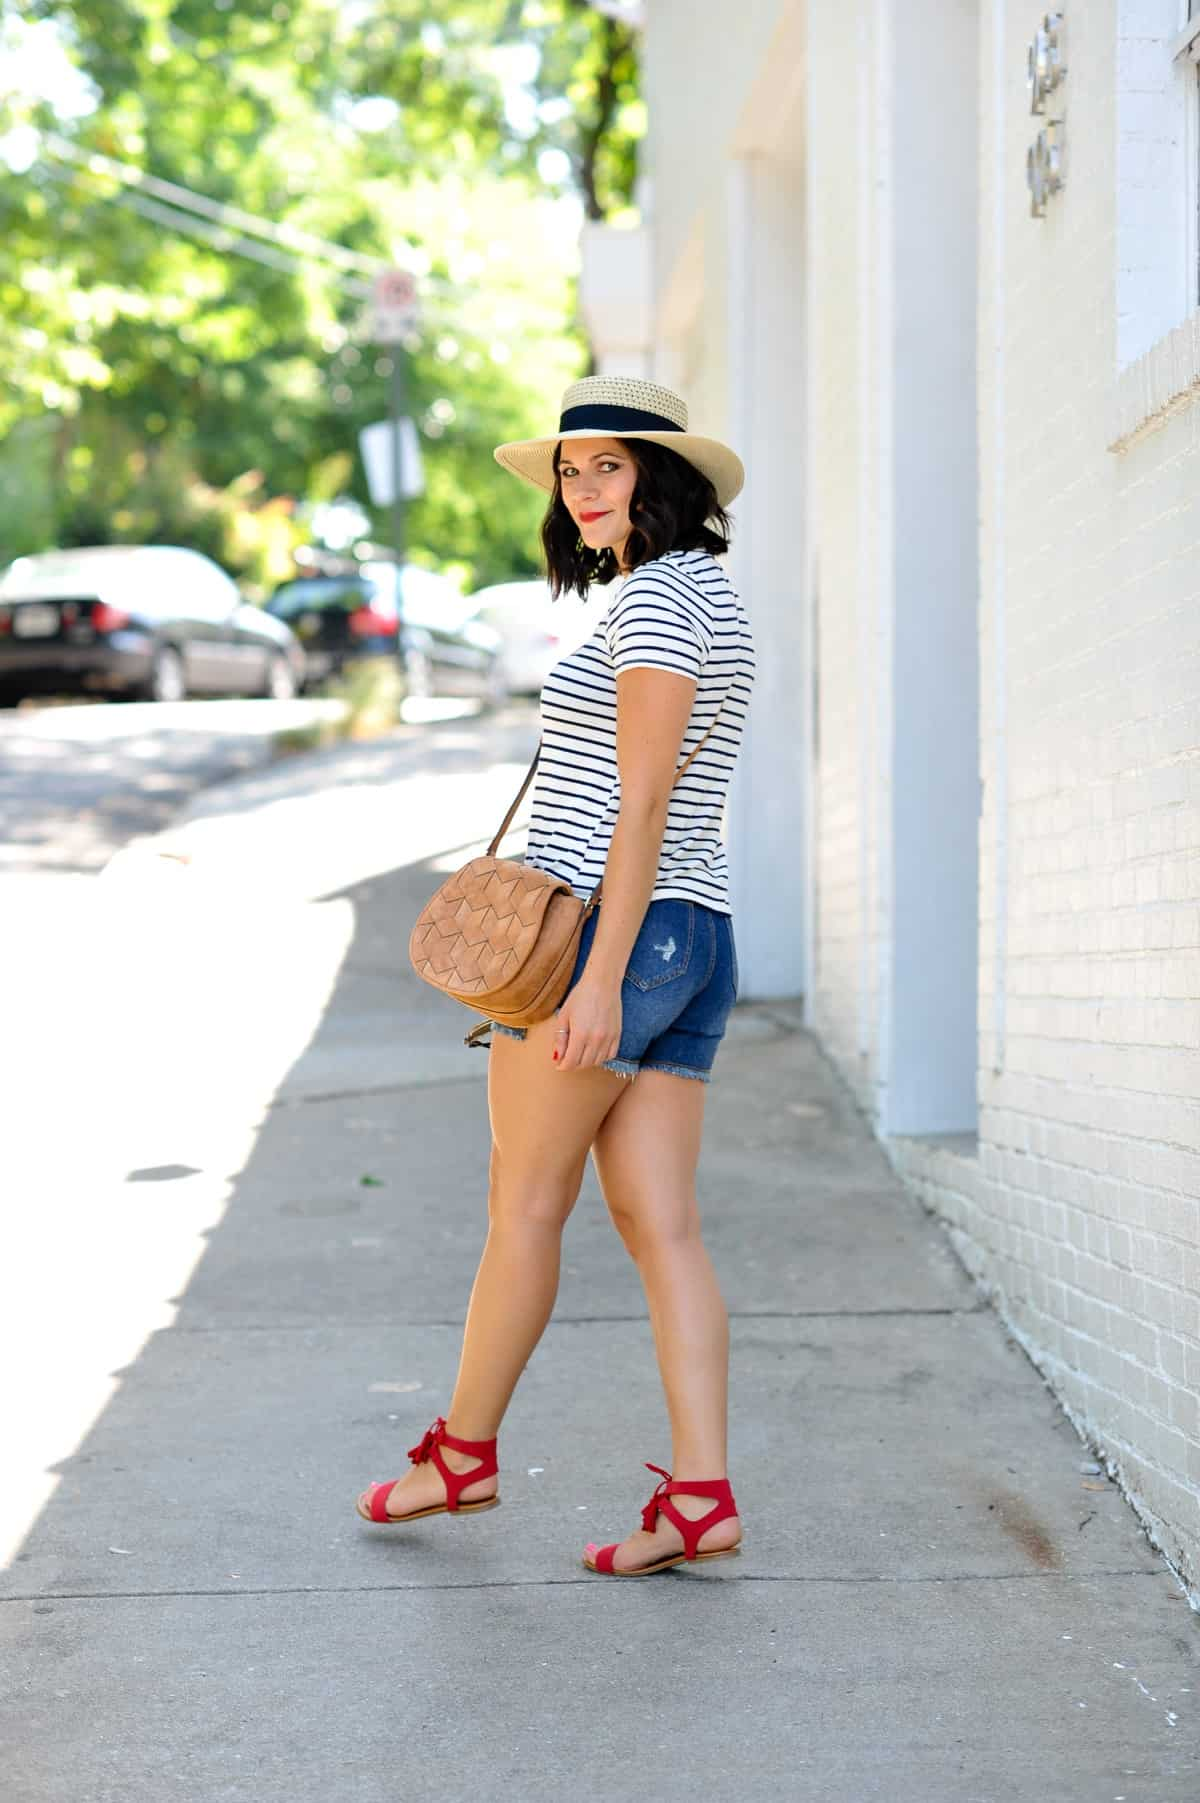 4th of july outfit ideas, striped tee outfits - @mystylevita - 18